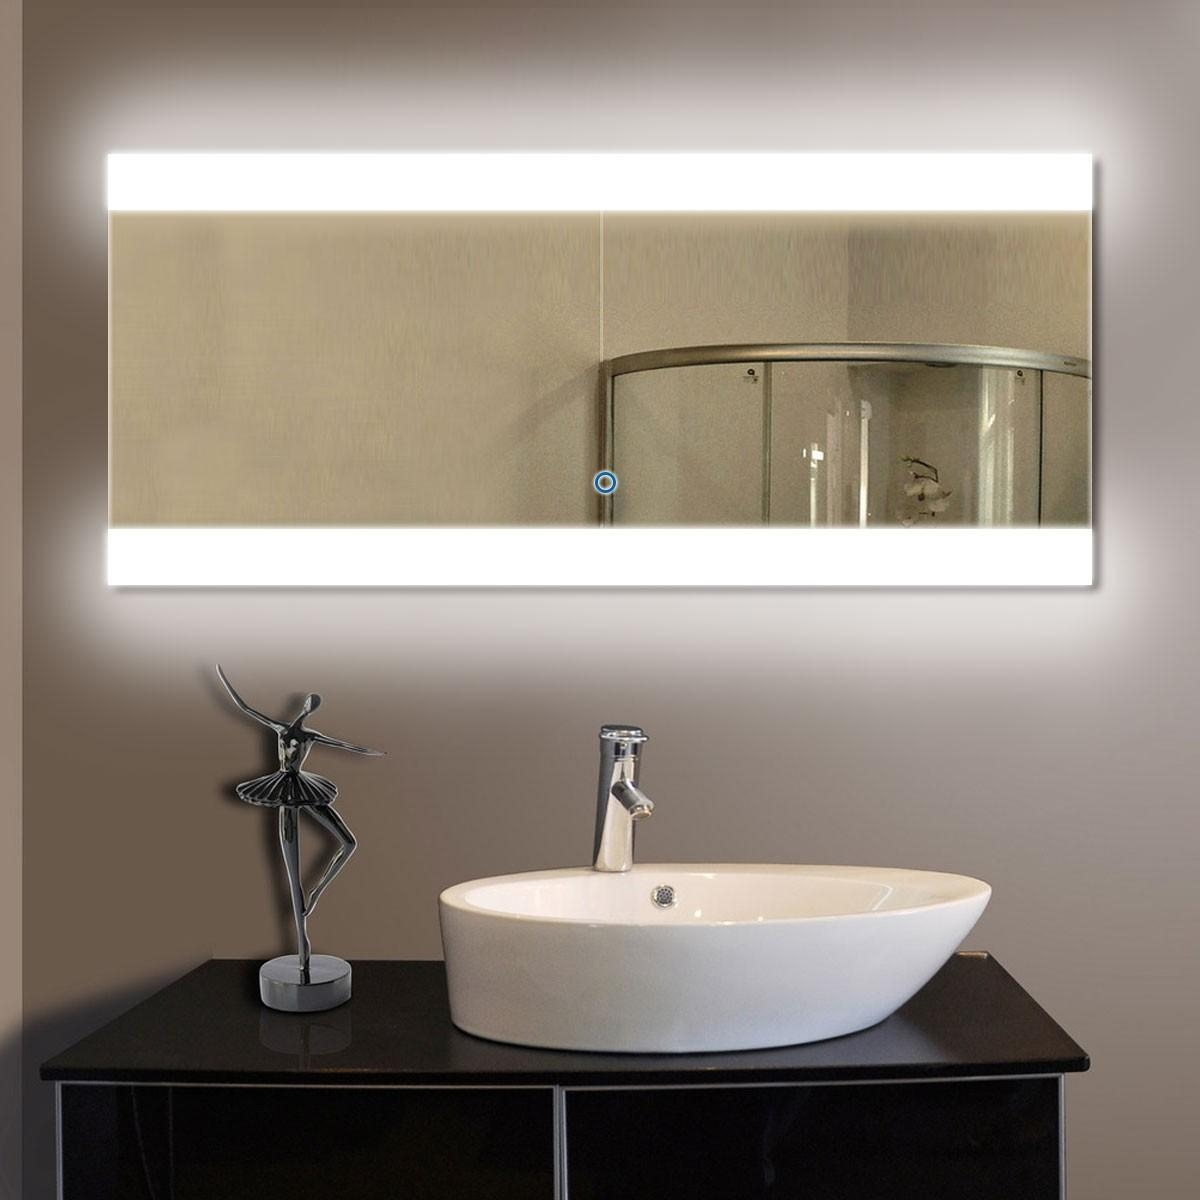 Buy Bathroom Led Lighted Mirrors, Backlit Mirrors | Decoraport Usa In Led Lighted Mirrors (Image 7 of 20)